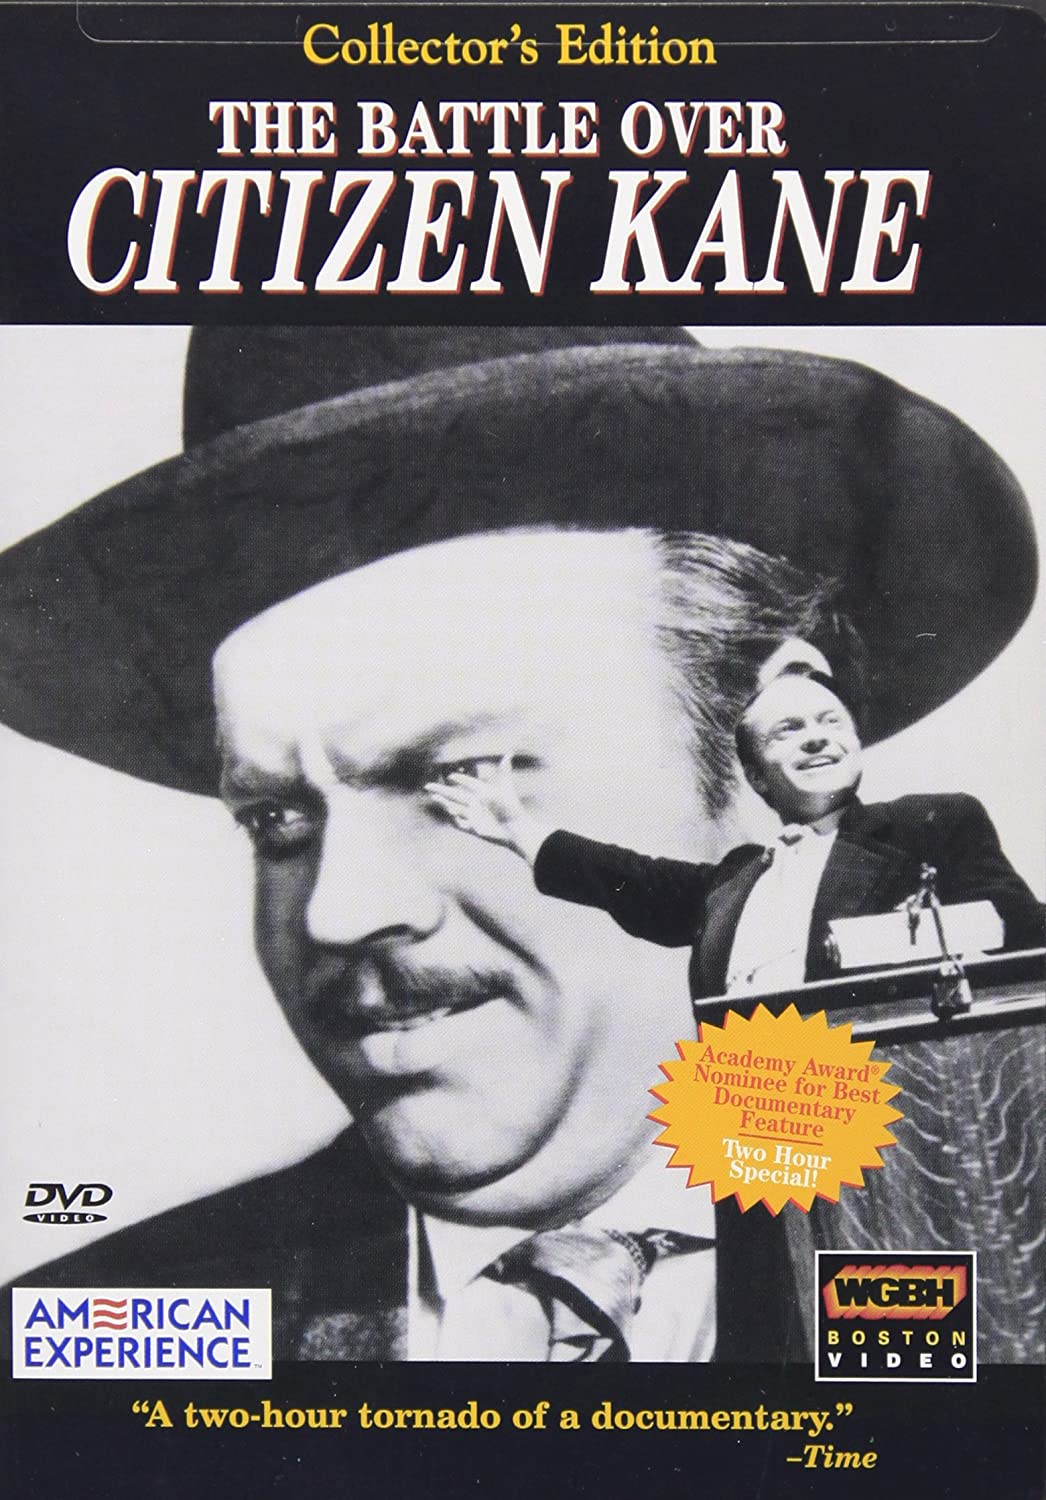 watch movie citizen kane online free